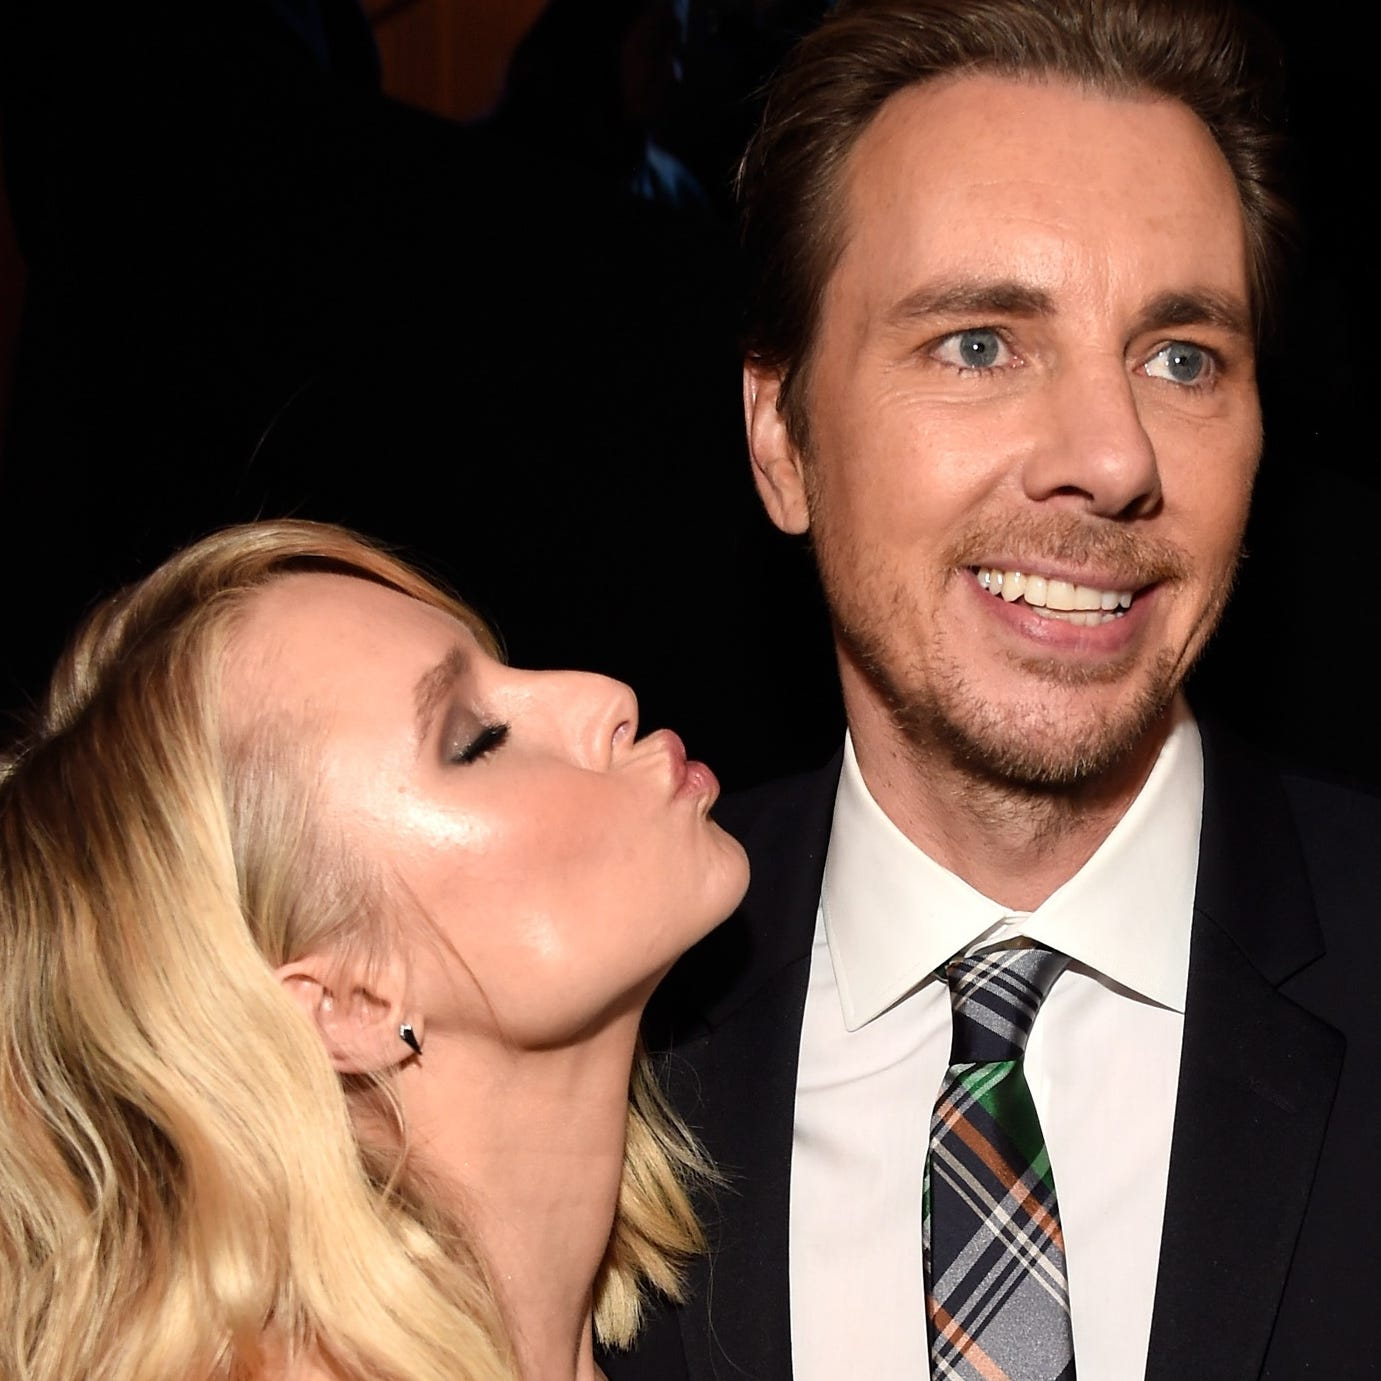 Kristen Bell and Dax Shepard being adorable, as they are.